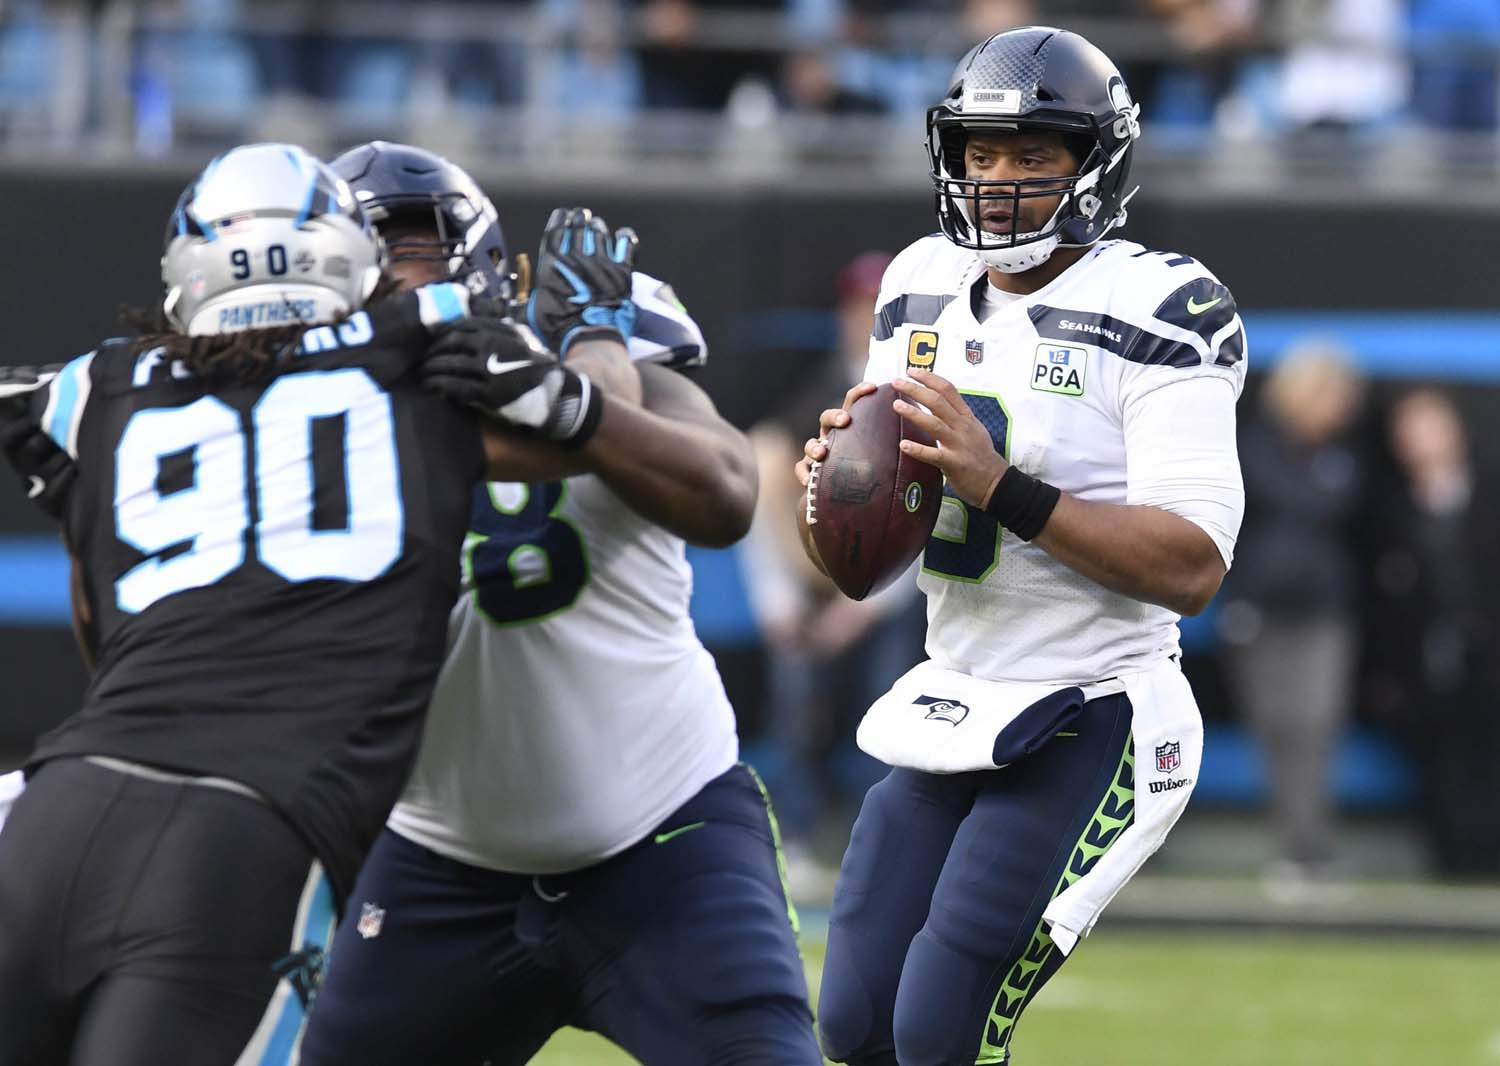 Seattle Seahawks quarterback Russell Wilson (3) looks to throw downfield against the Carolina Panthers in the second half on Sunday, Nov. 25, 2018, at Bank of America Stadium in Charlotte, North Carolina.